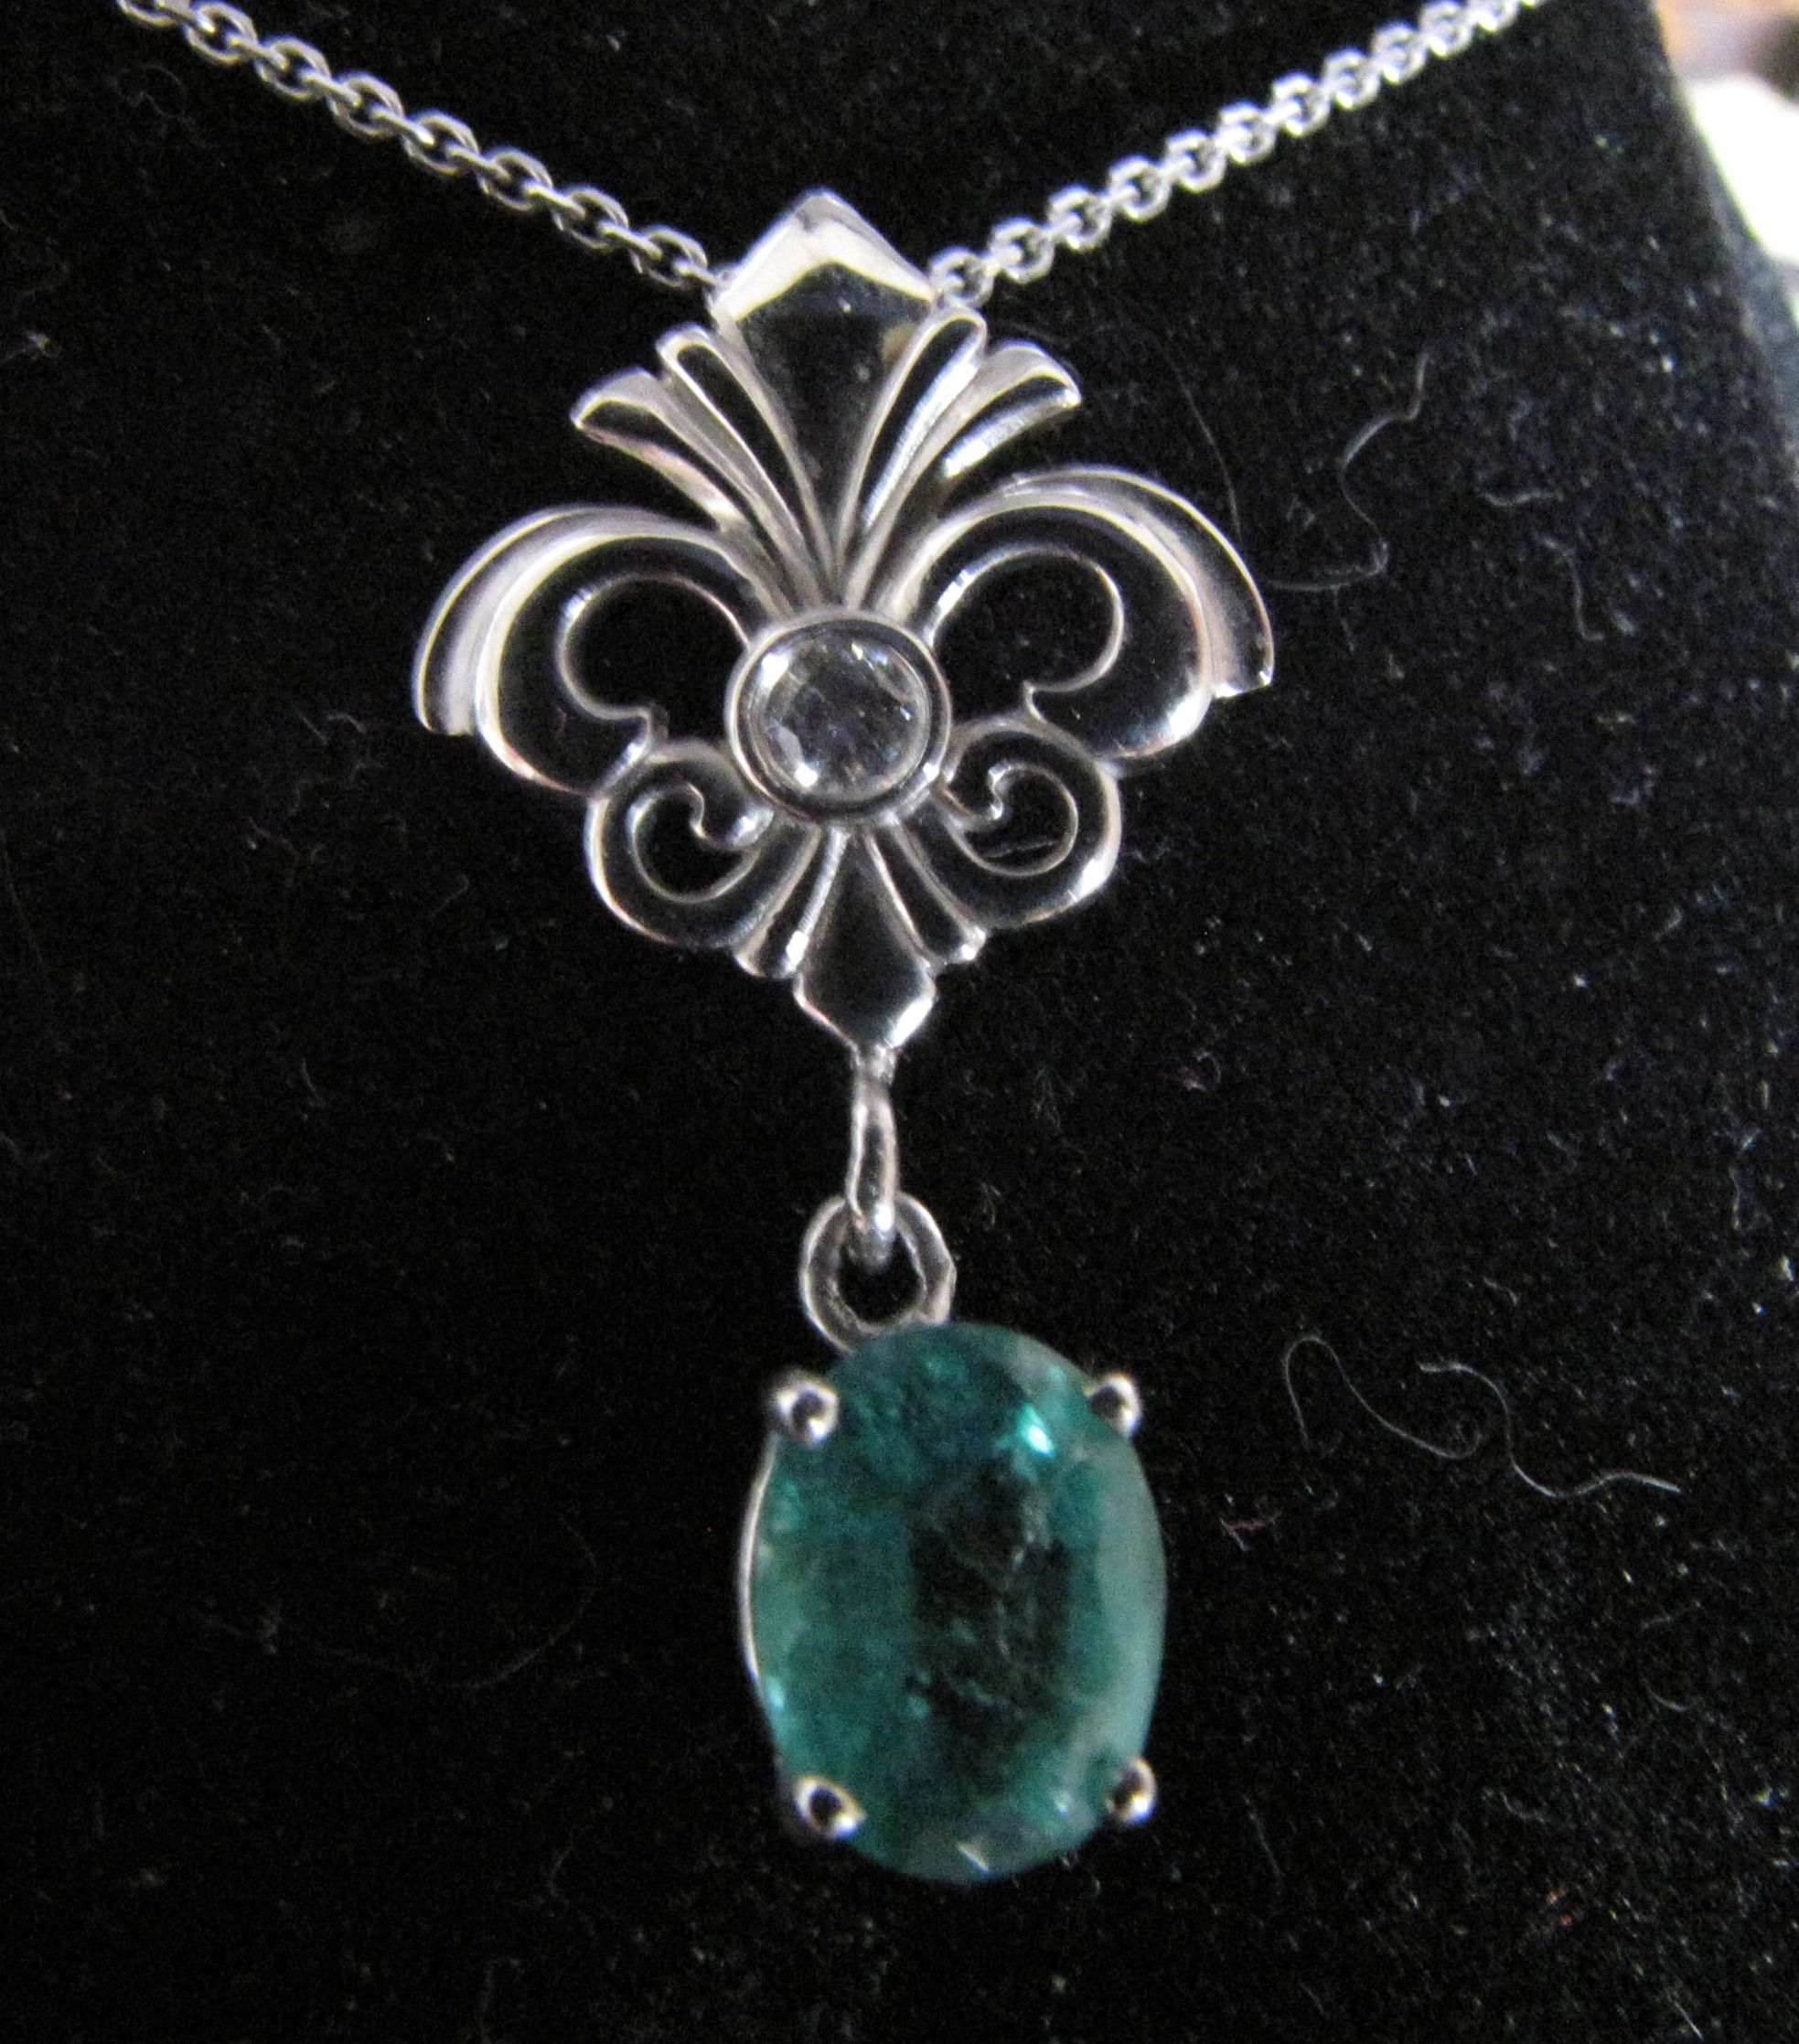 This Is The Necklace David Gave Me For Our 10th Wedding Anniversary 2 Years Ago A Fleur De Lis With A Diam Wedding Rings 10th Wedding Anniversary My Wedding